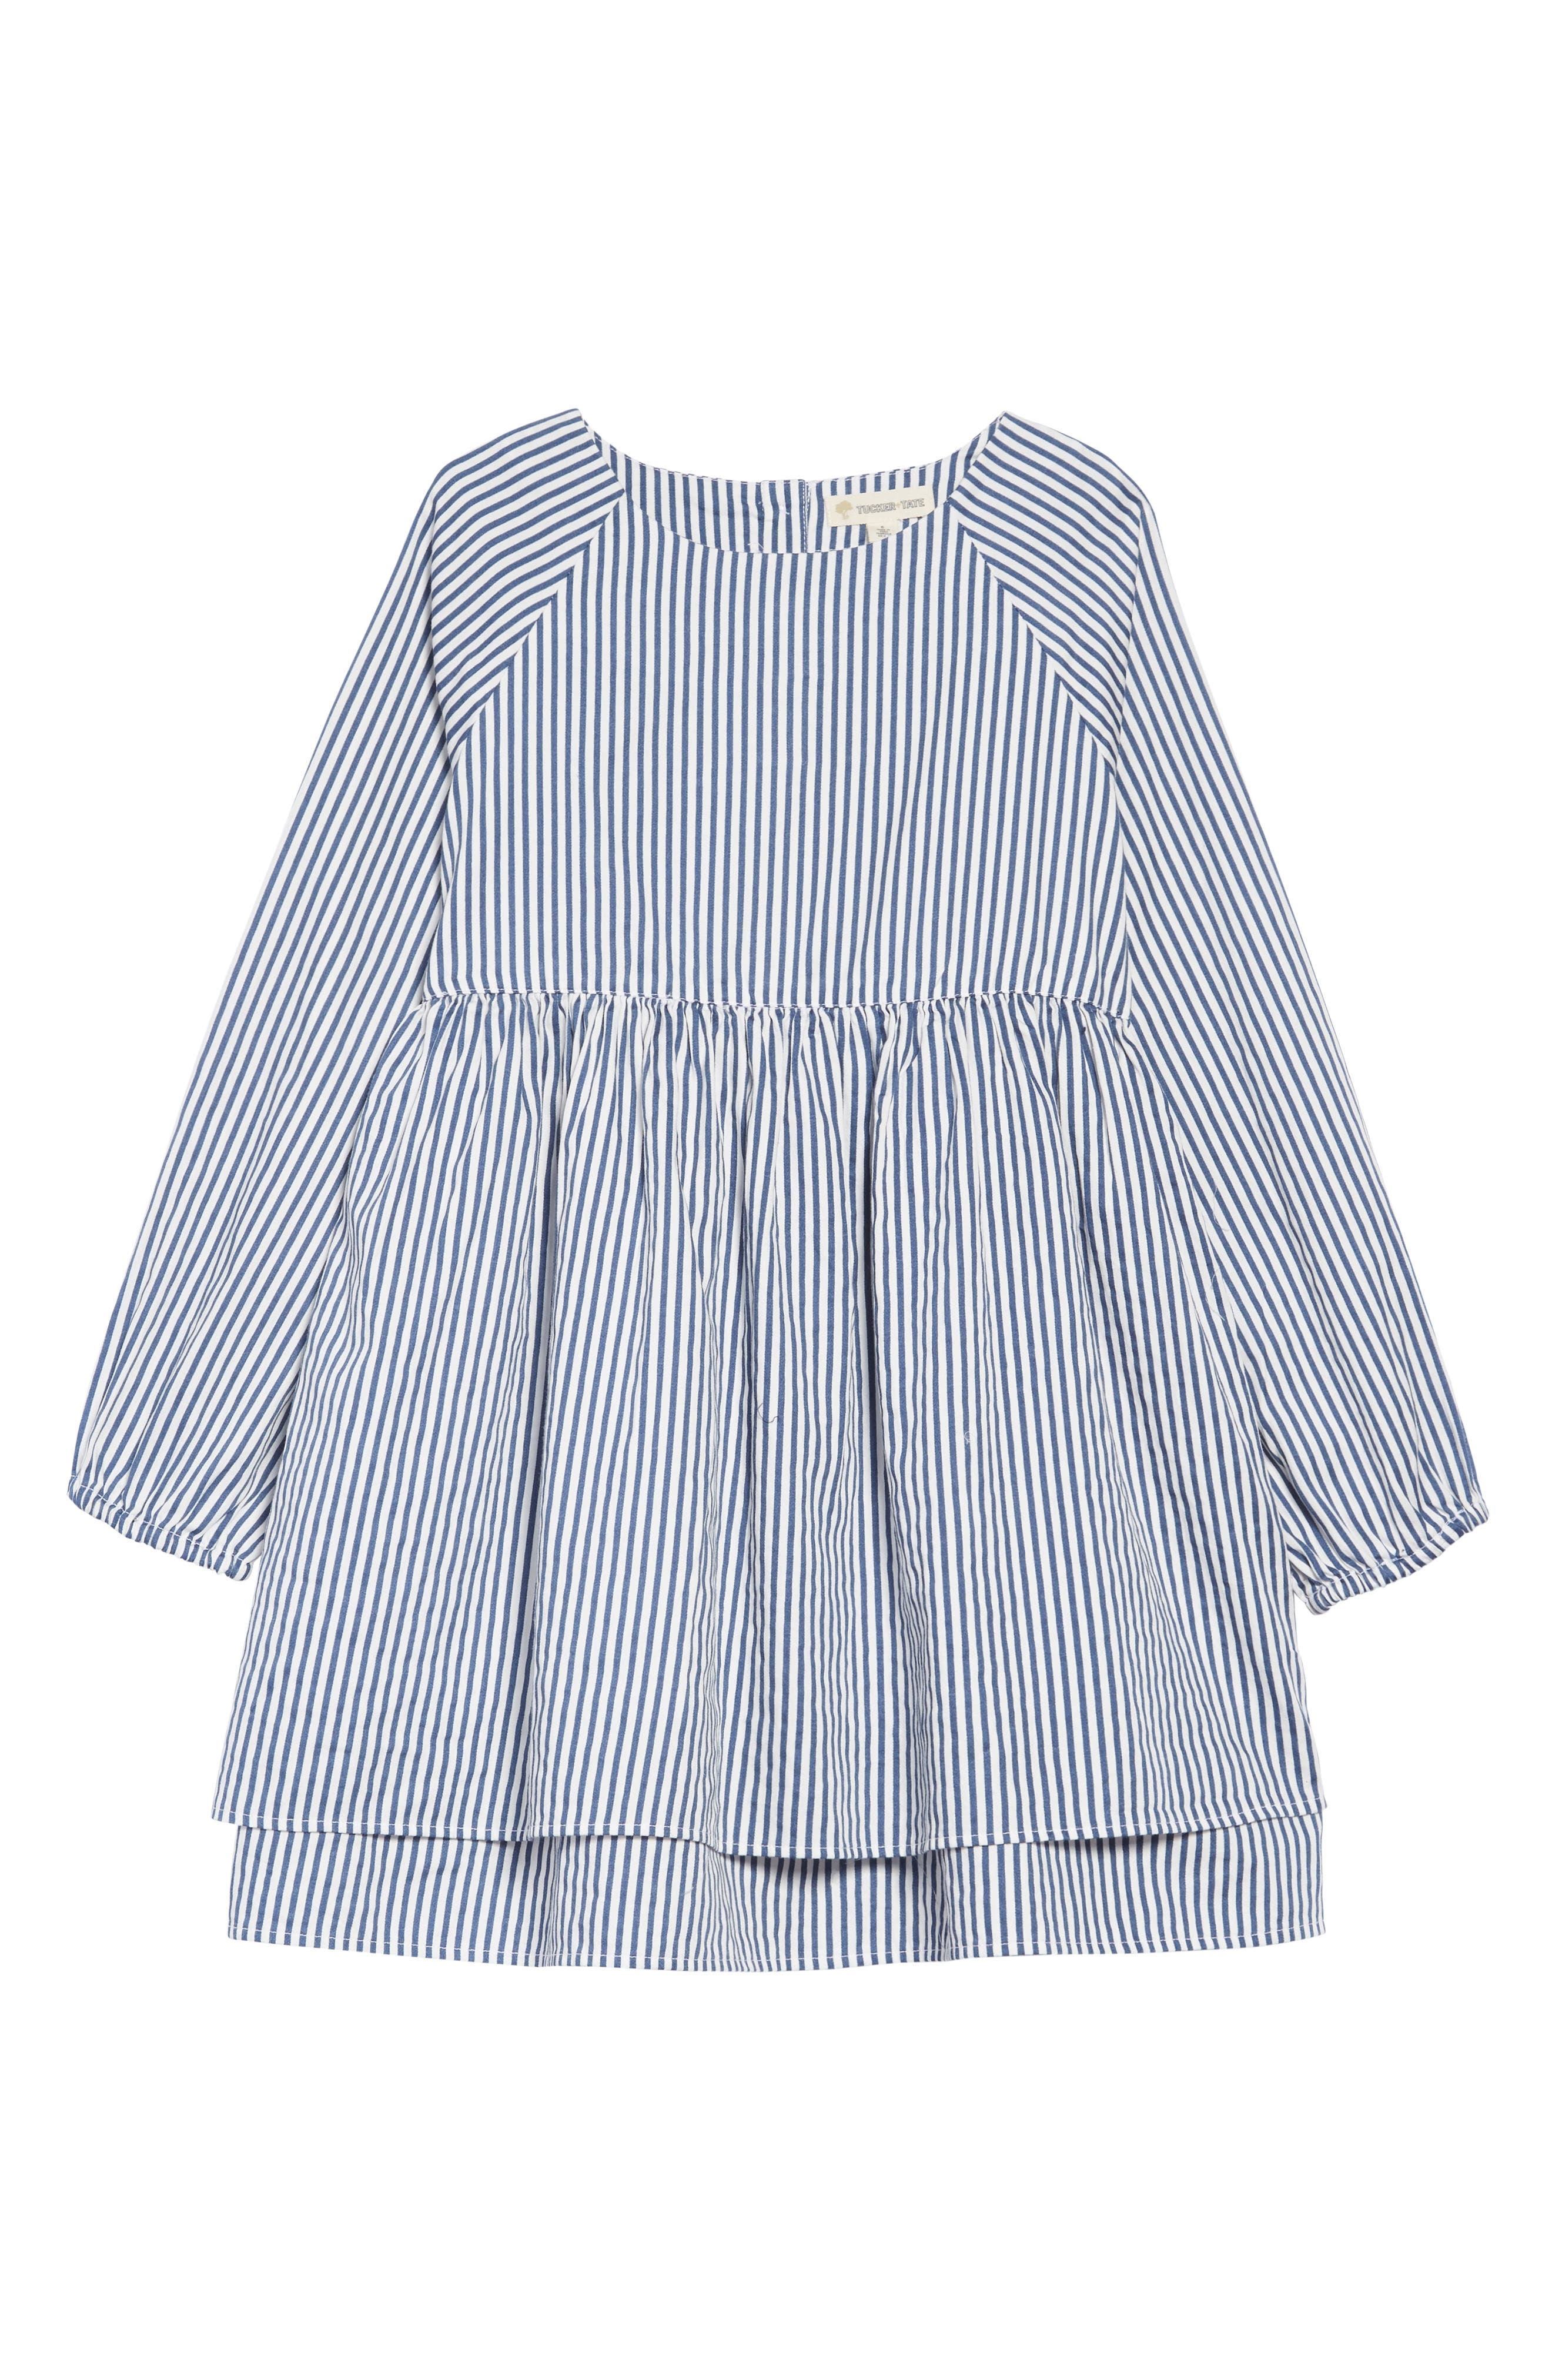 Woven Stripe Dress, Main, color, WHITE- NAVY STRIPE